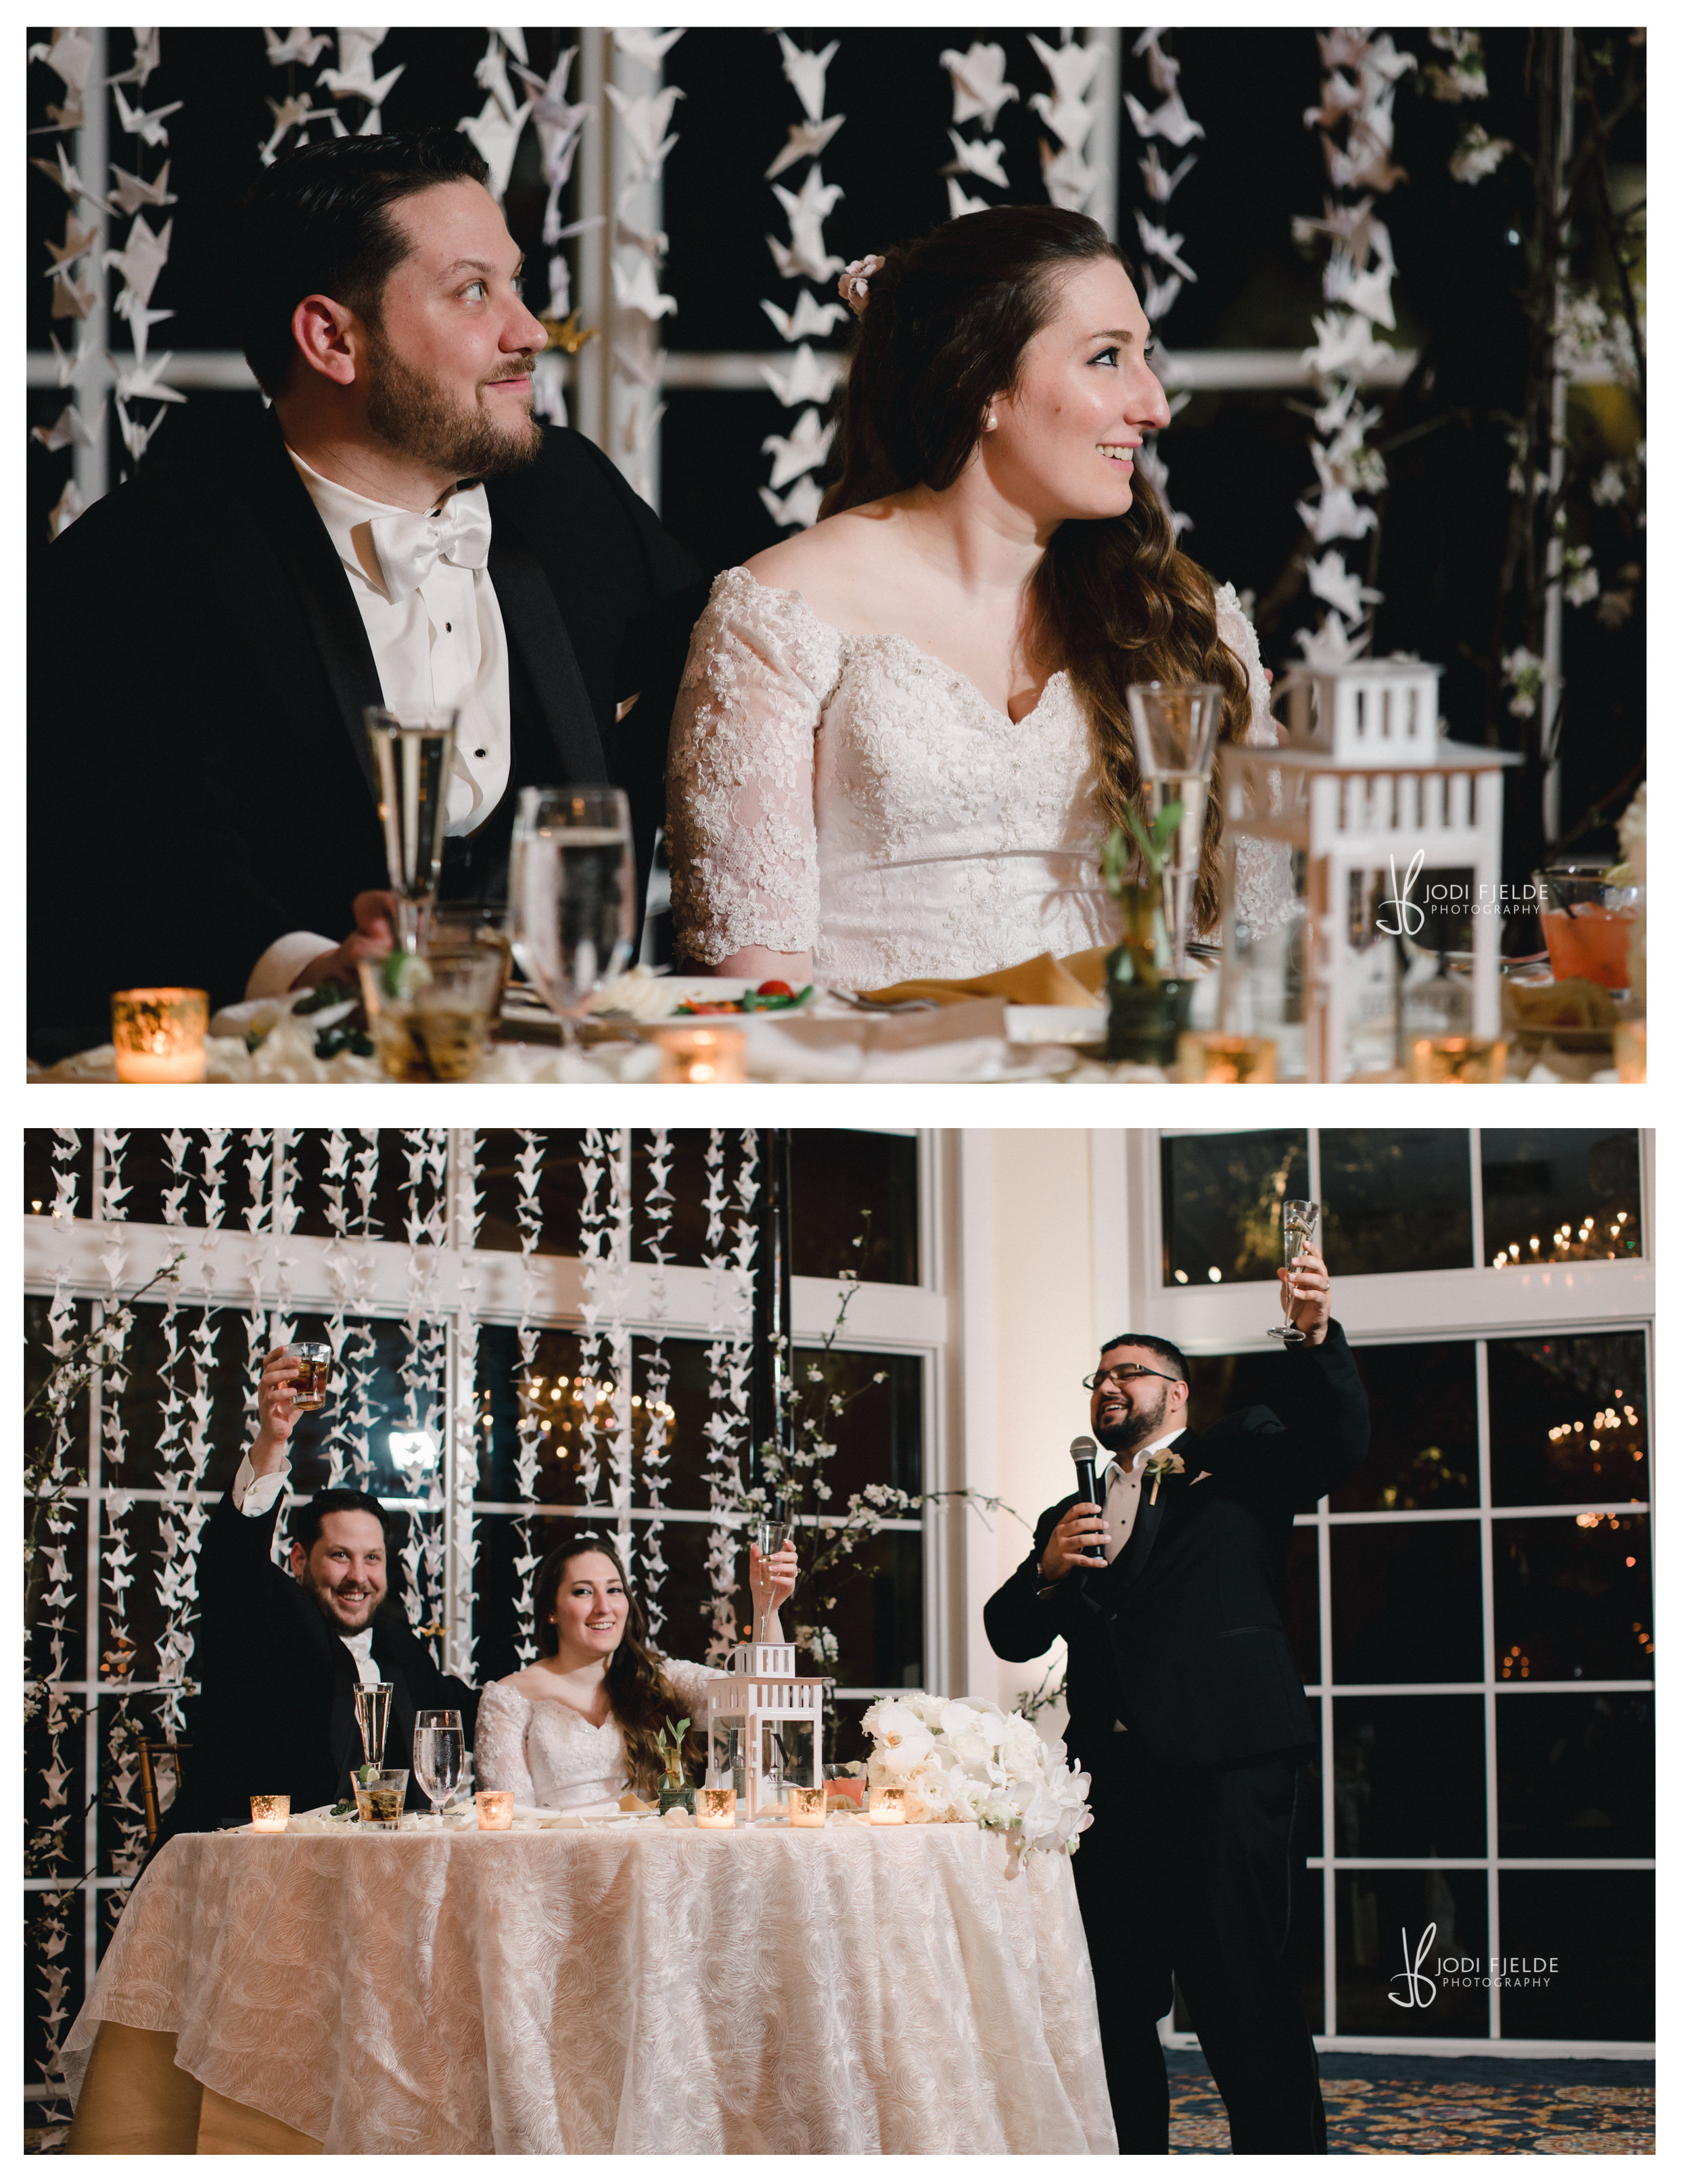 Deer_Creek_Country_Club_Wedding_Jodi_Fjelde_Photography_Andrea_Jason_19.jpg